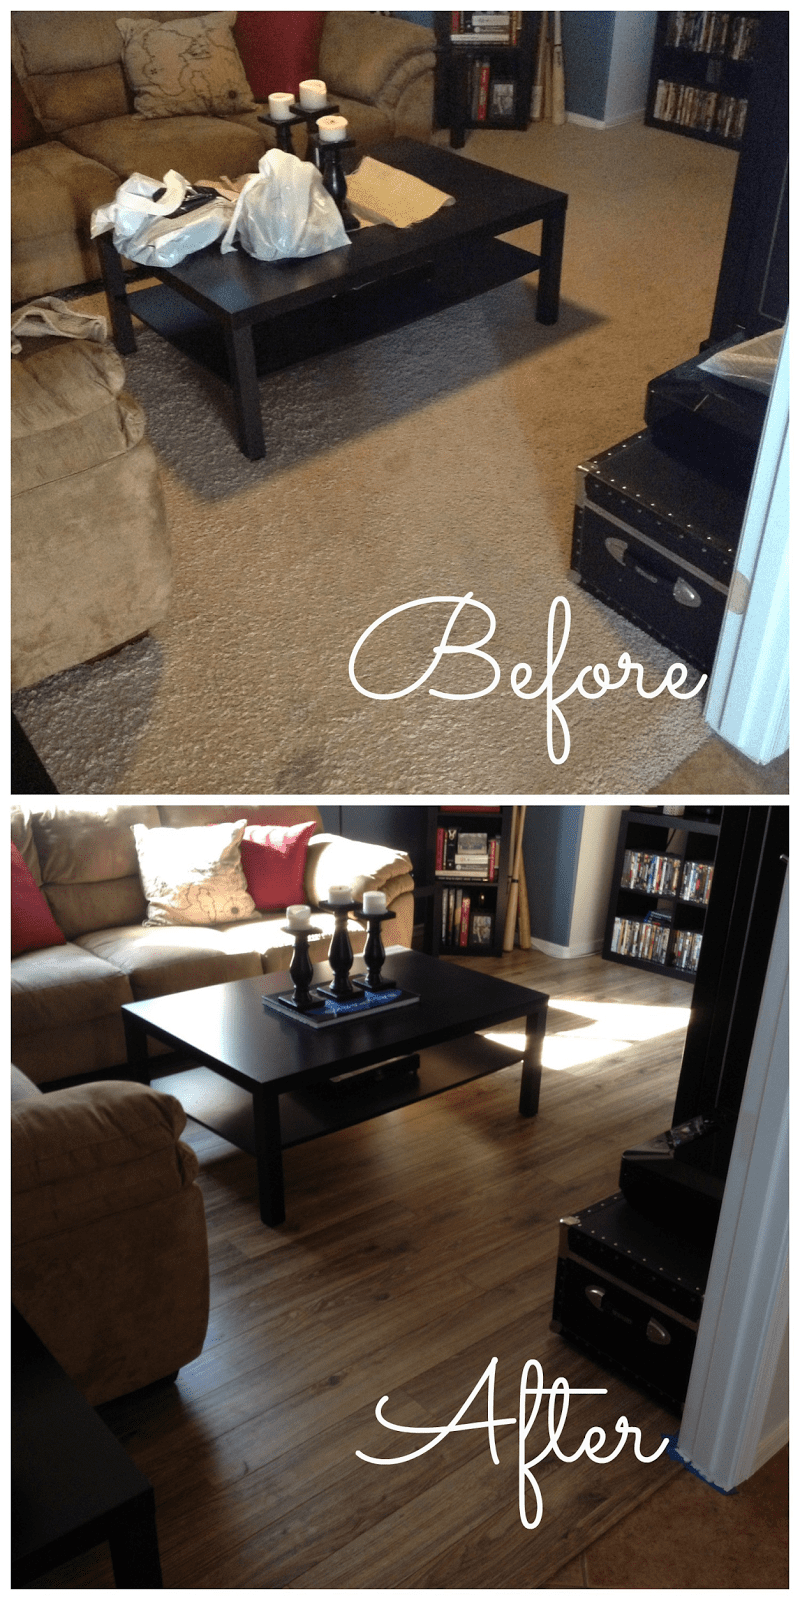 20 Insanely Clever Upgrades for your Home. DIY, DIY home projects, home décor, home, dream home, DIY. projects, home improvement, inexpensive home improvement, cheap home DIY. #homeimprovements #homeimprovementprojects #diyhomedecor #diyhome #diy #homehacks me decor, easy home DIY, popular pin, DIY home, DIY tutorials, easy home upgrades, DIY home improvements.